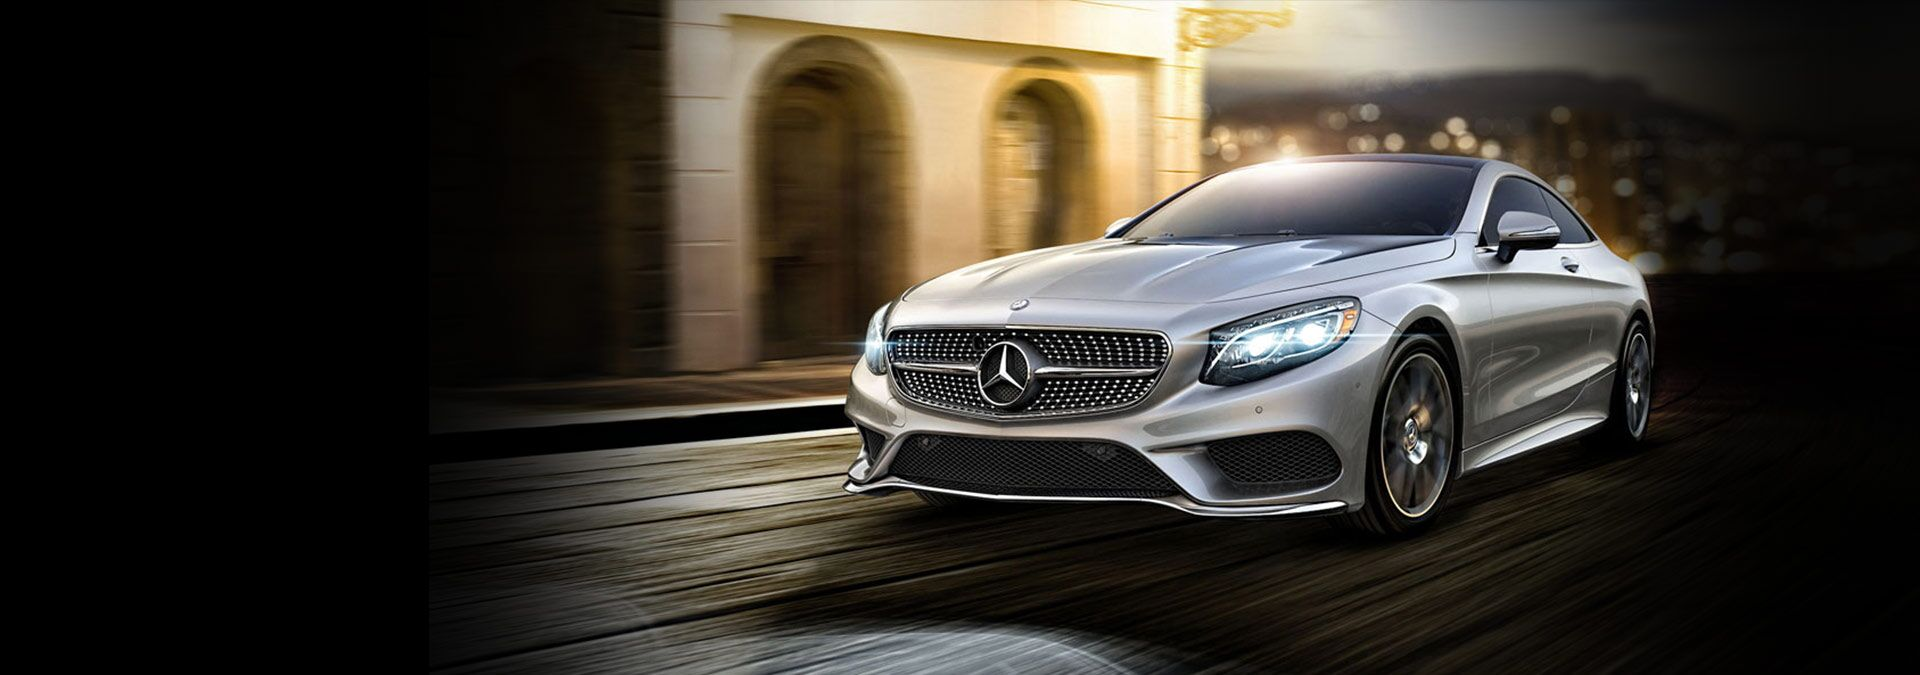 New S-Class Coupe in Medford, OR